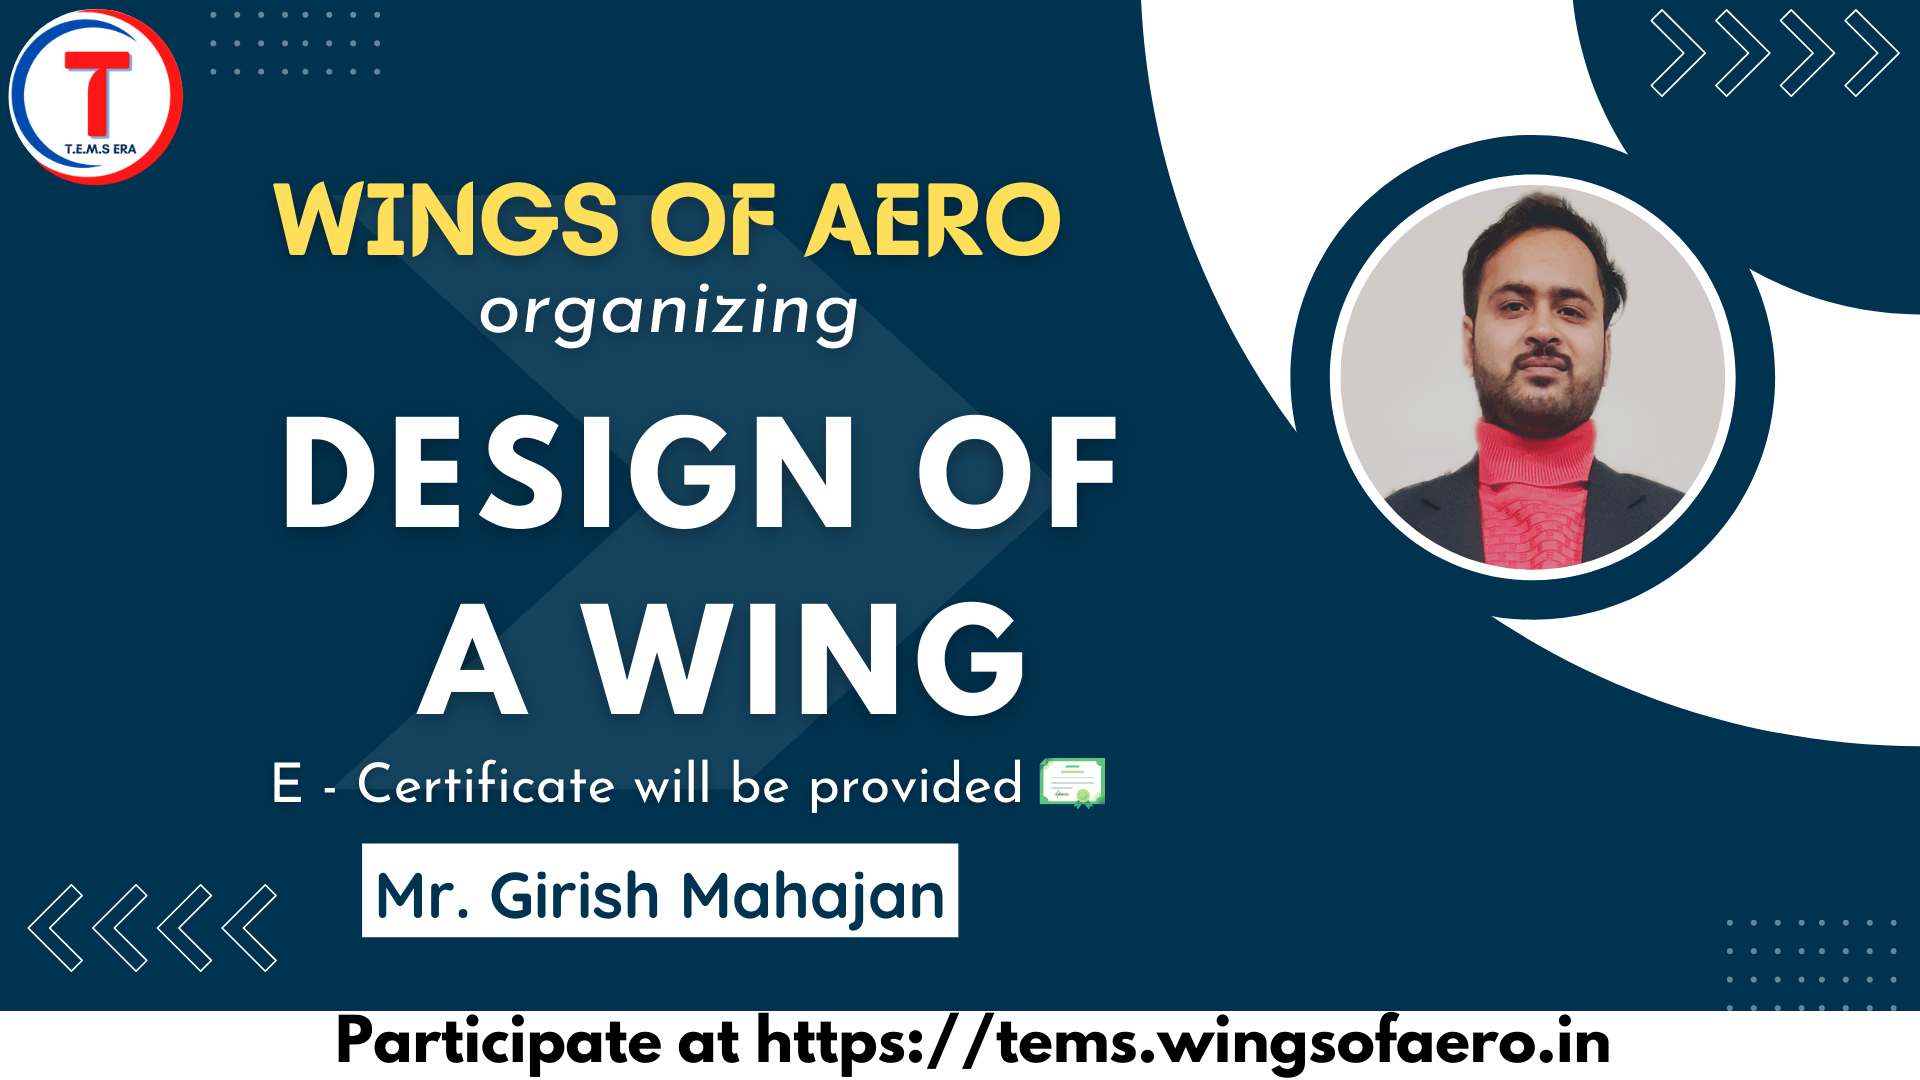 Design of a Wing